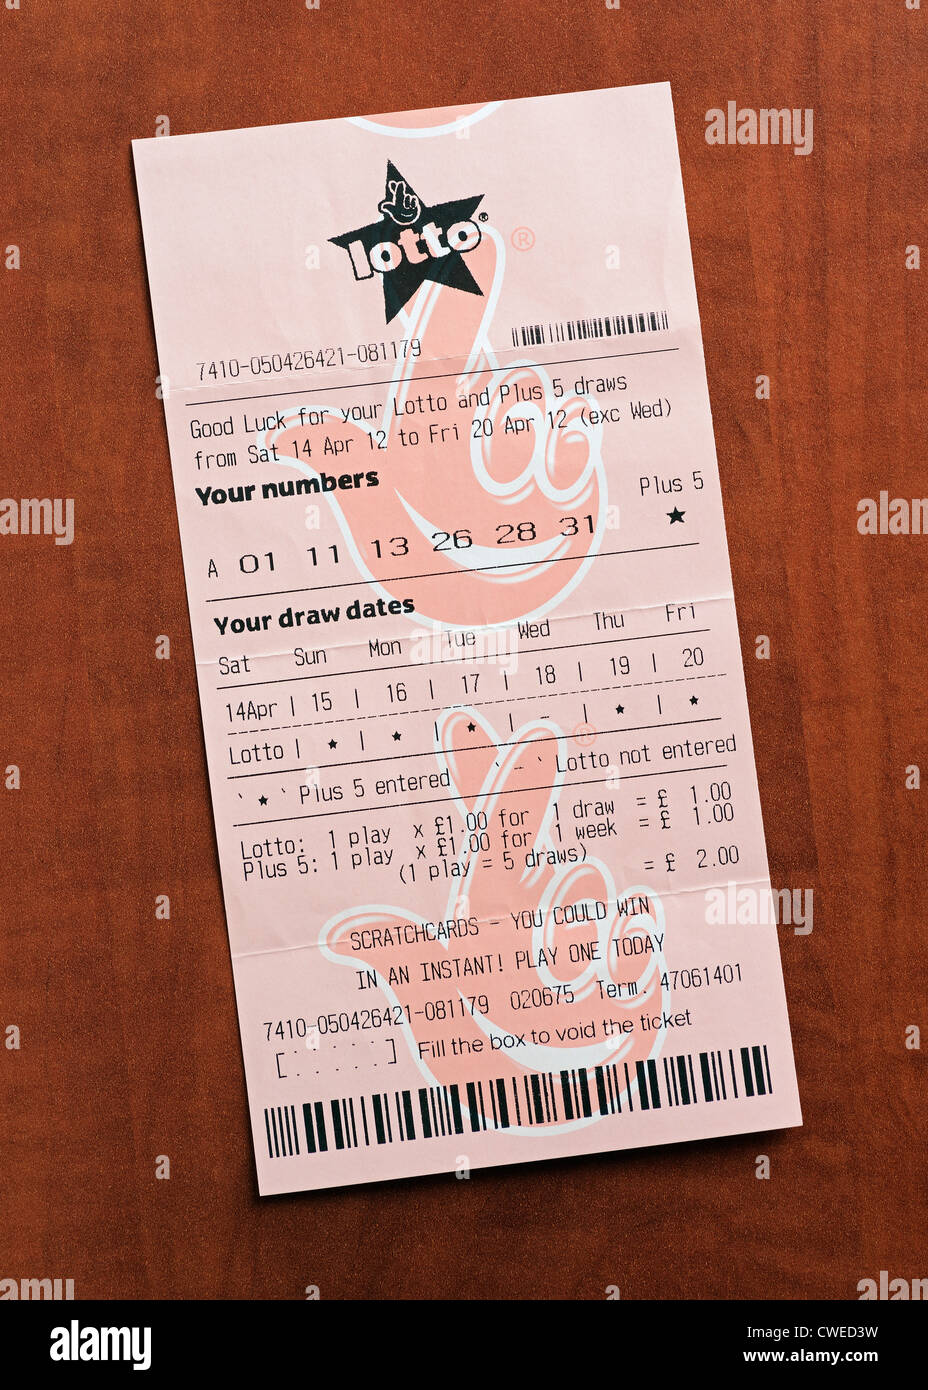 Lotto Ticket Numbers Stock Photos & Lotto Ticket Numbers Stock ...